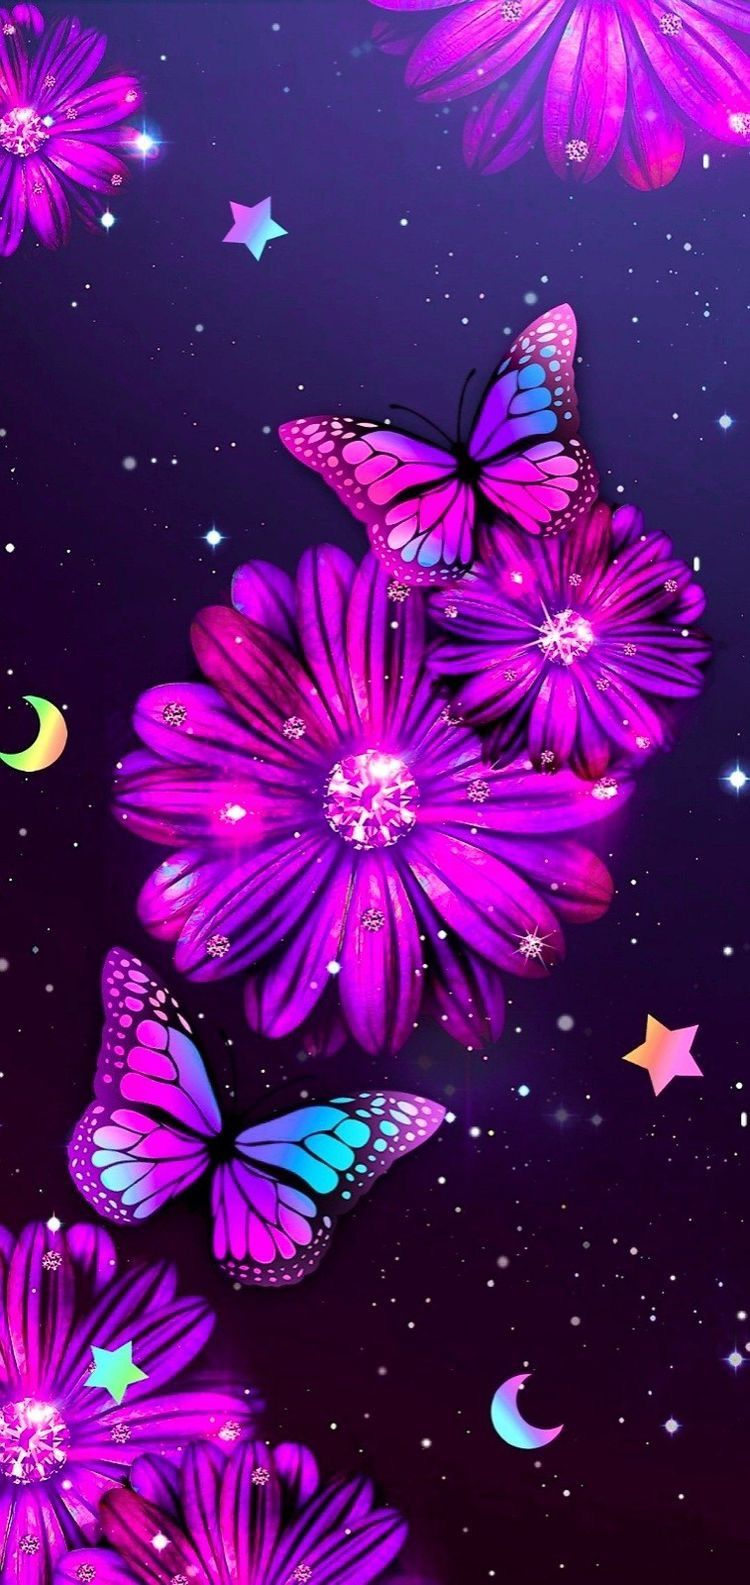 Pin by Stephy on pinK wallZ Butterfly wallpaper